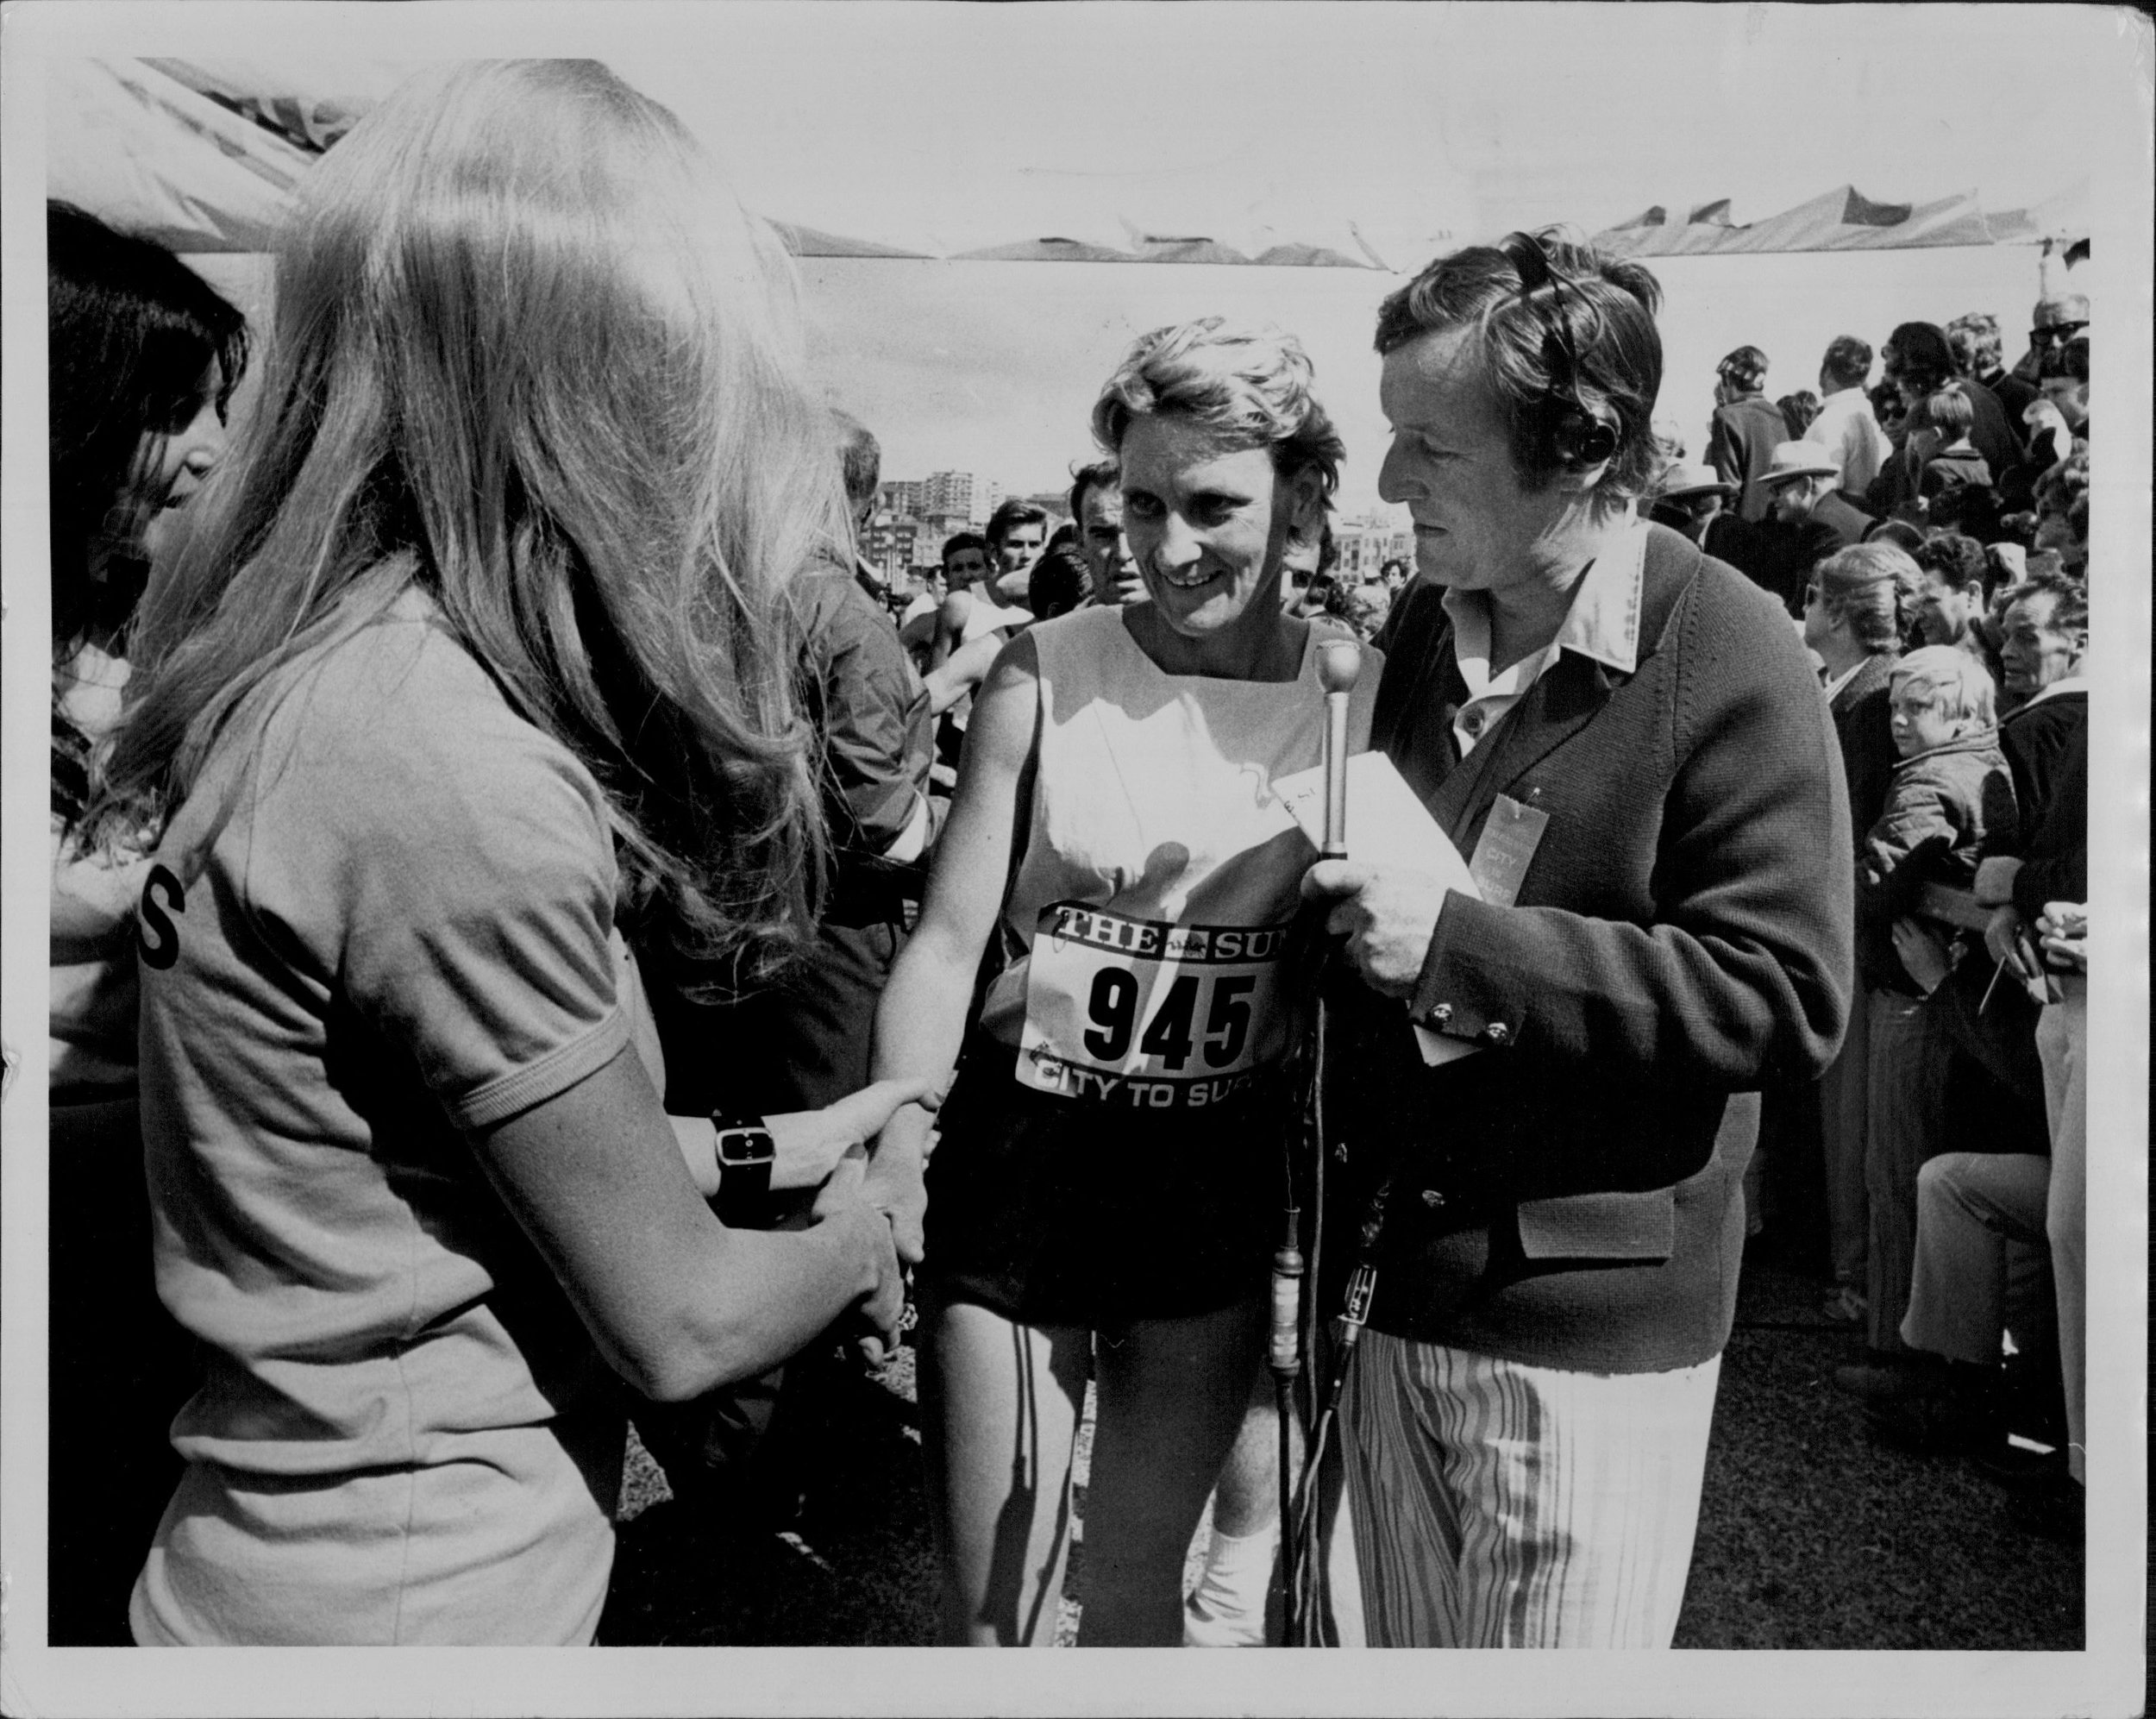 Beth Stanford was the first female to complete City2Surf in 1971.